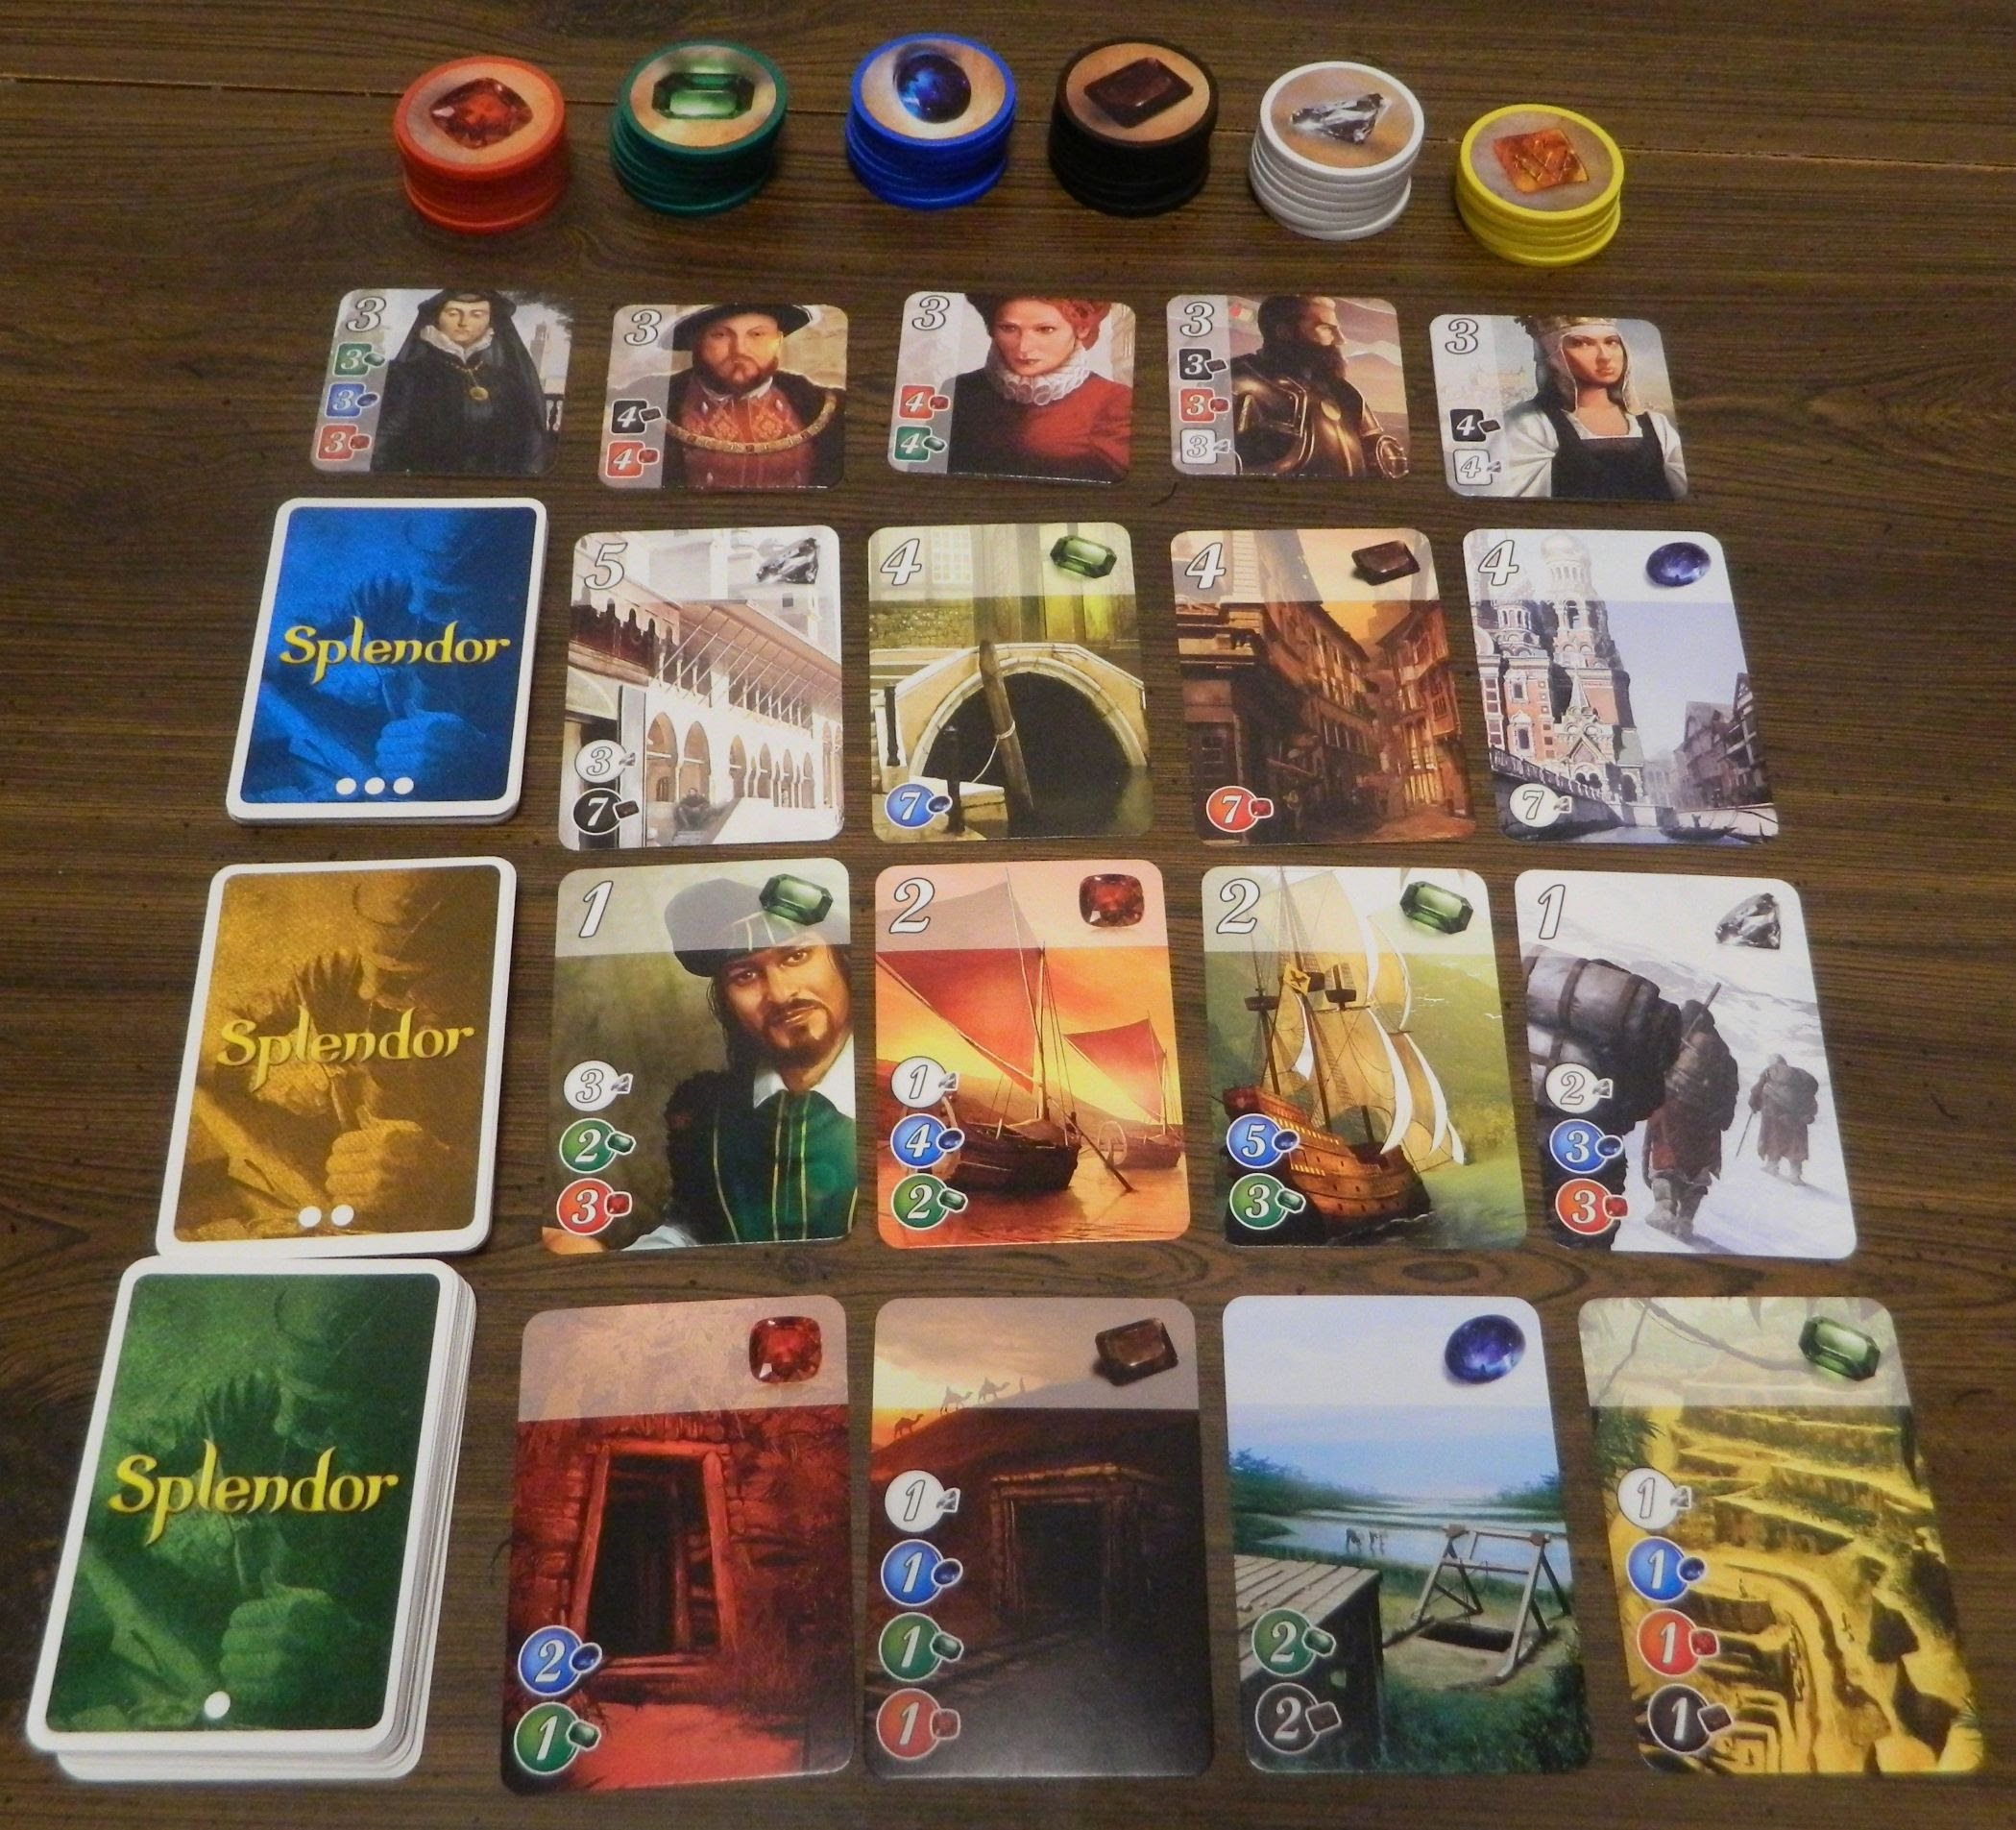 Splendor Board Game Review and Rules | Geeky Hobbies